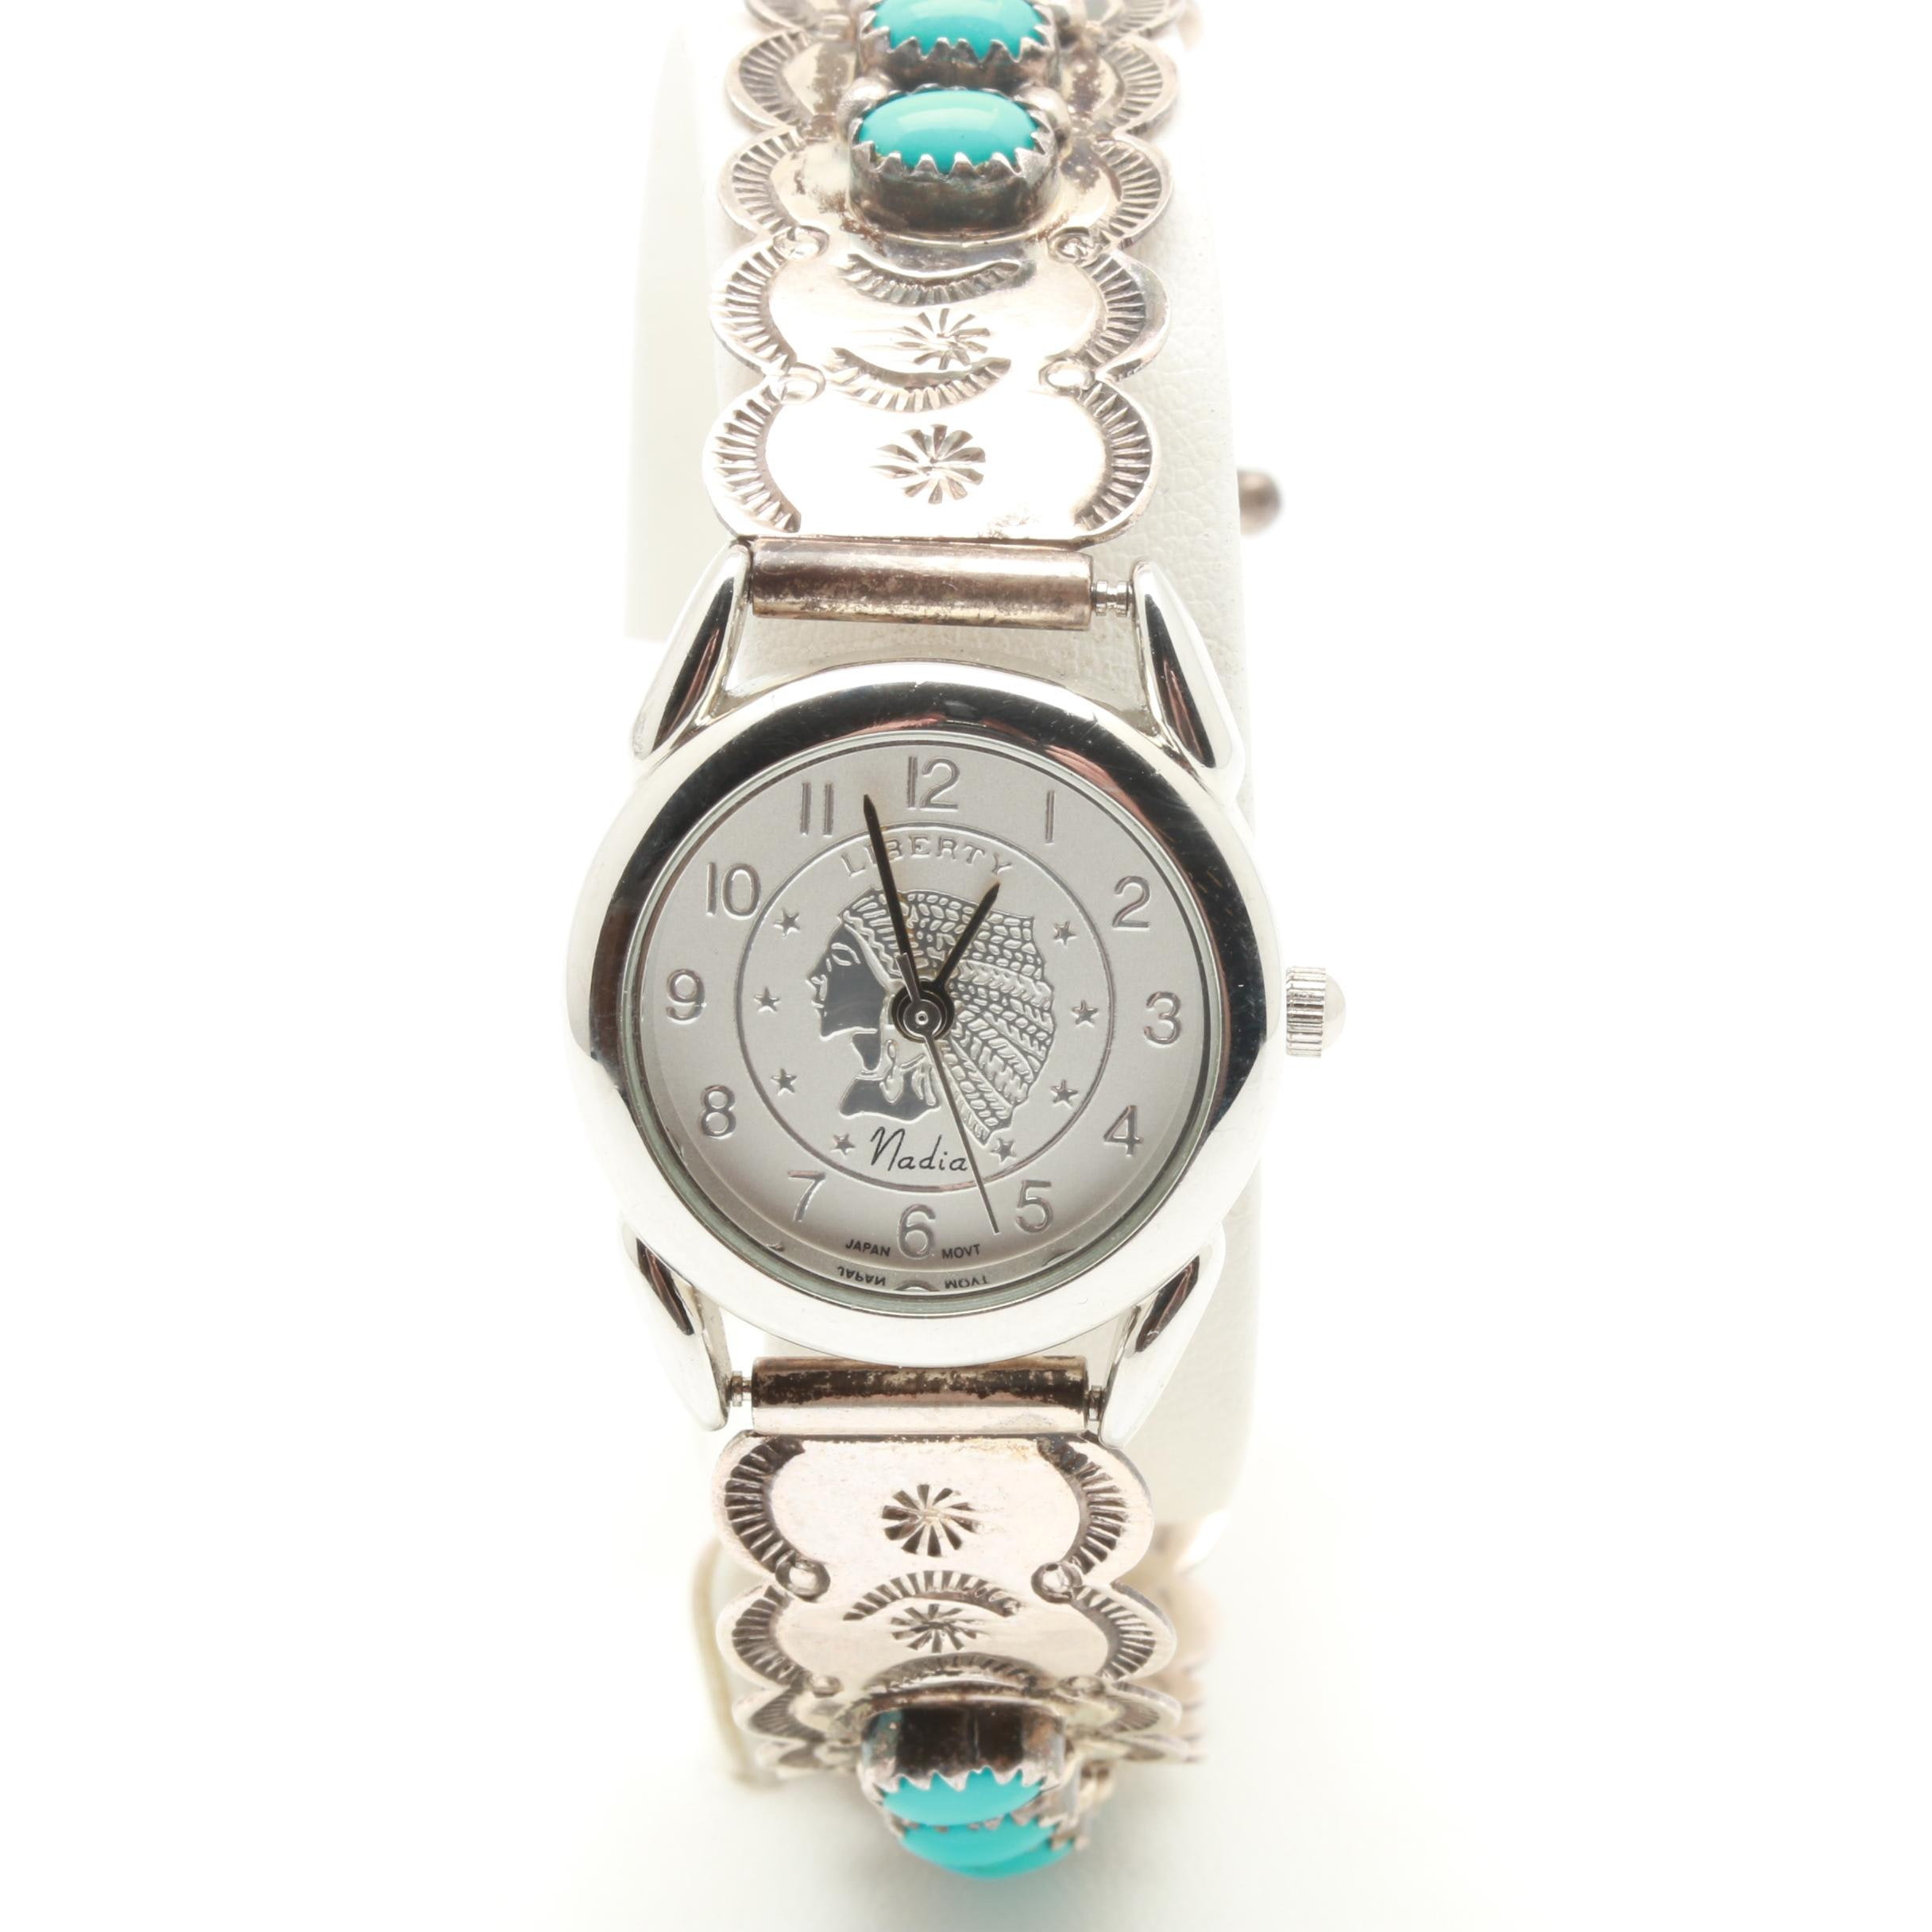 Signed Navajo Artist Larry Moses Yazzie Sterling Silver and Turquoise Wristwatch